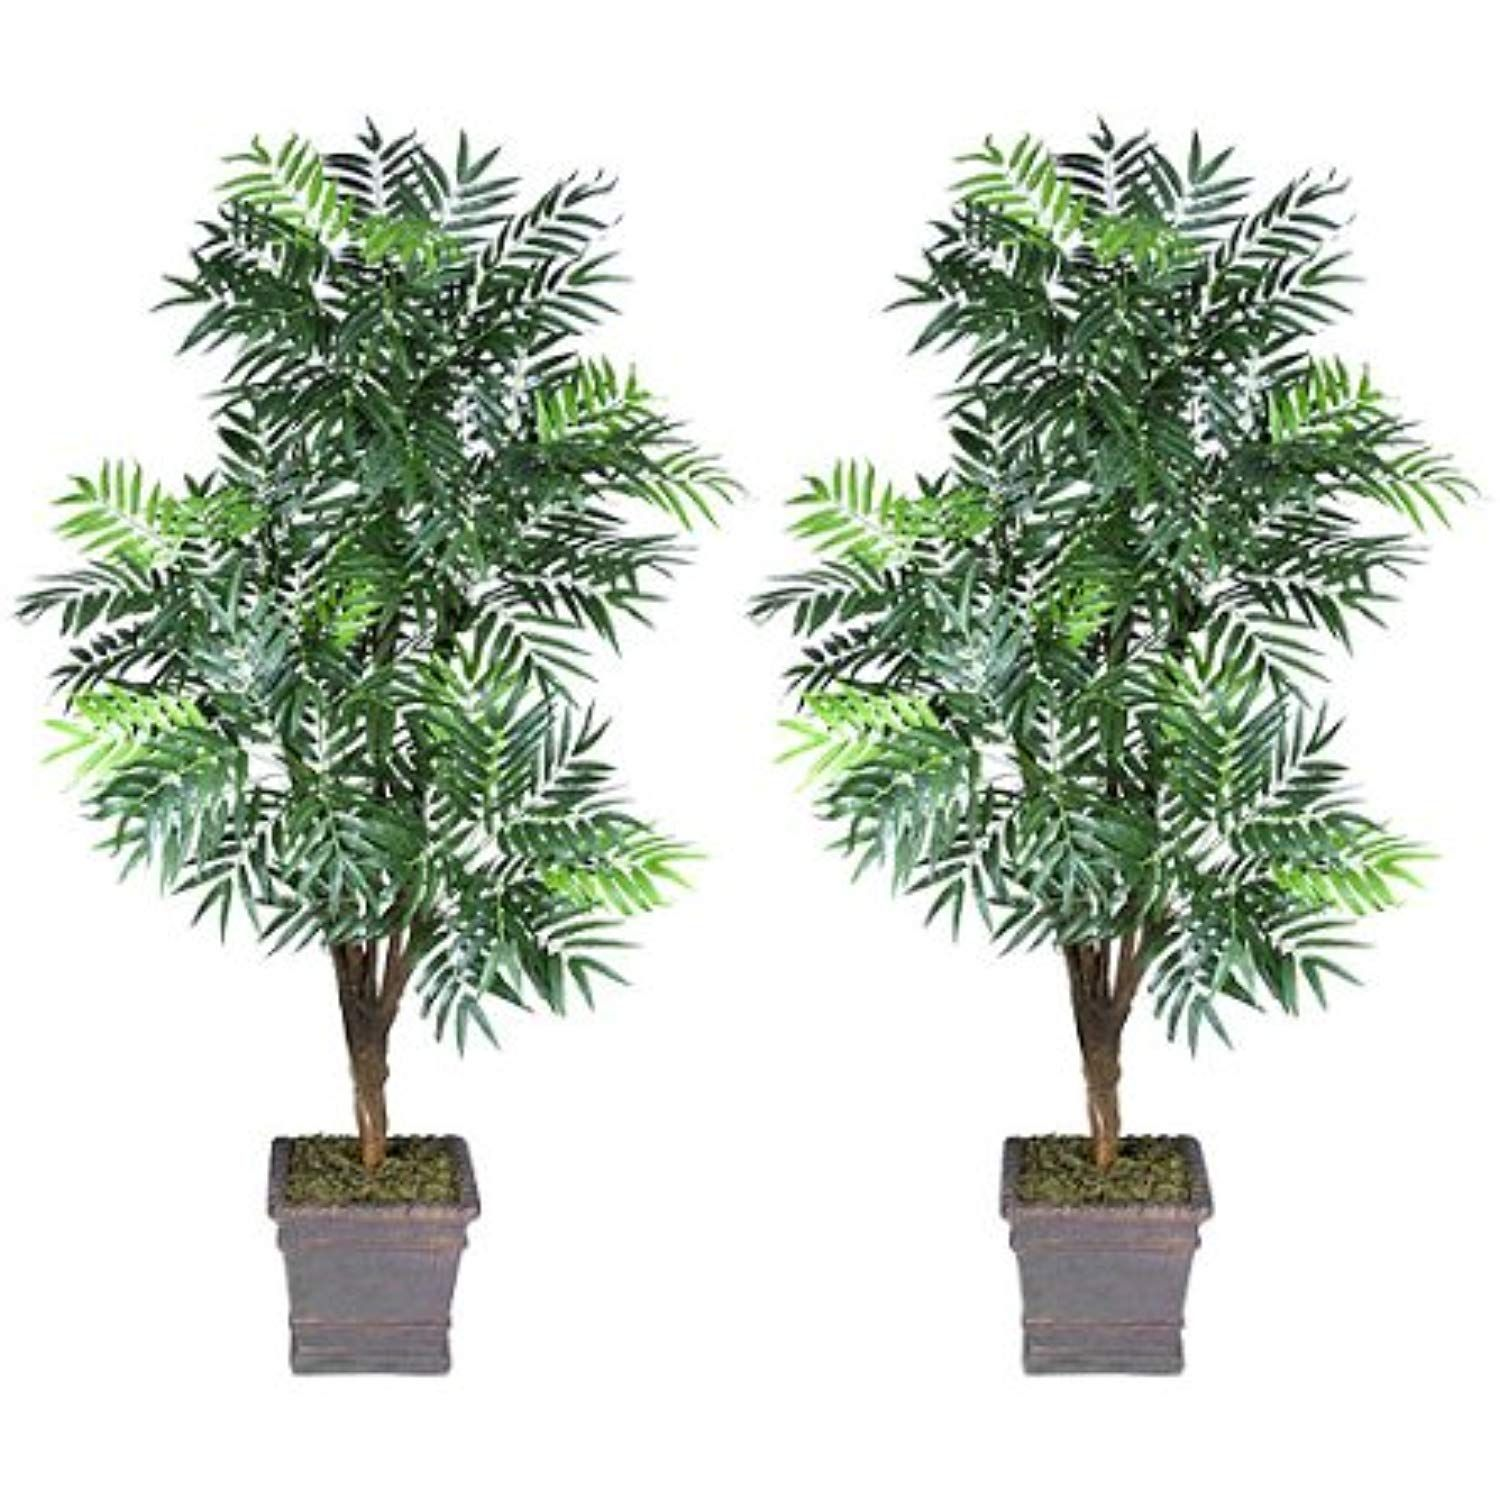 Two 6 Phoenix Palm Artificial Trees With 5 Heads With No Pot See This Great Product This Is An Affiliate Link Artificial Tree Silk Plants Artificial Plants Trees